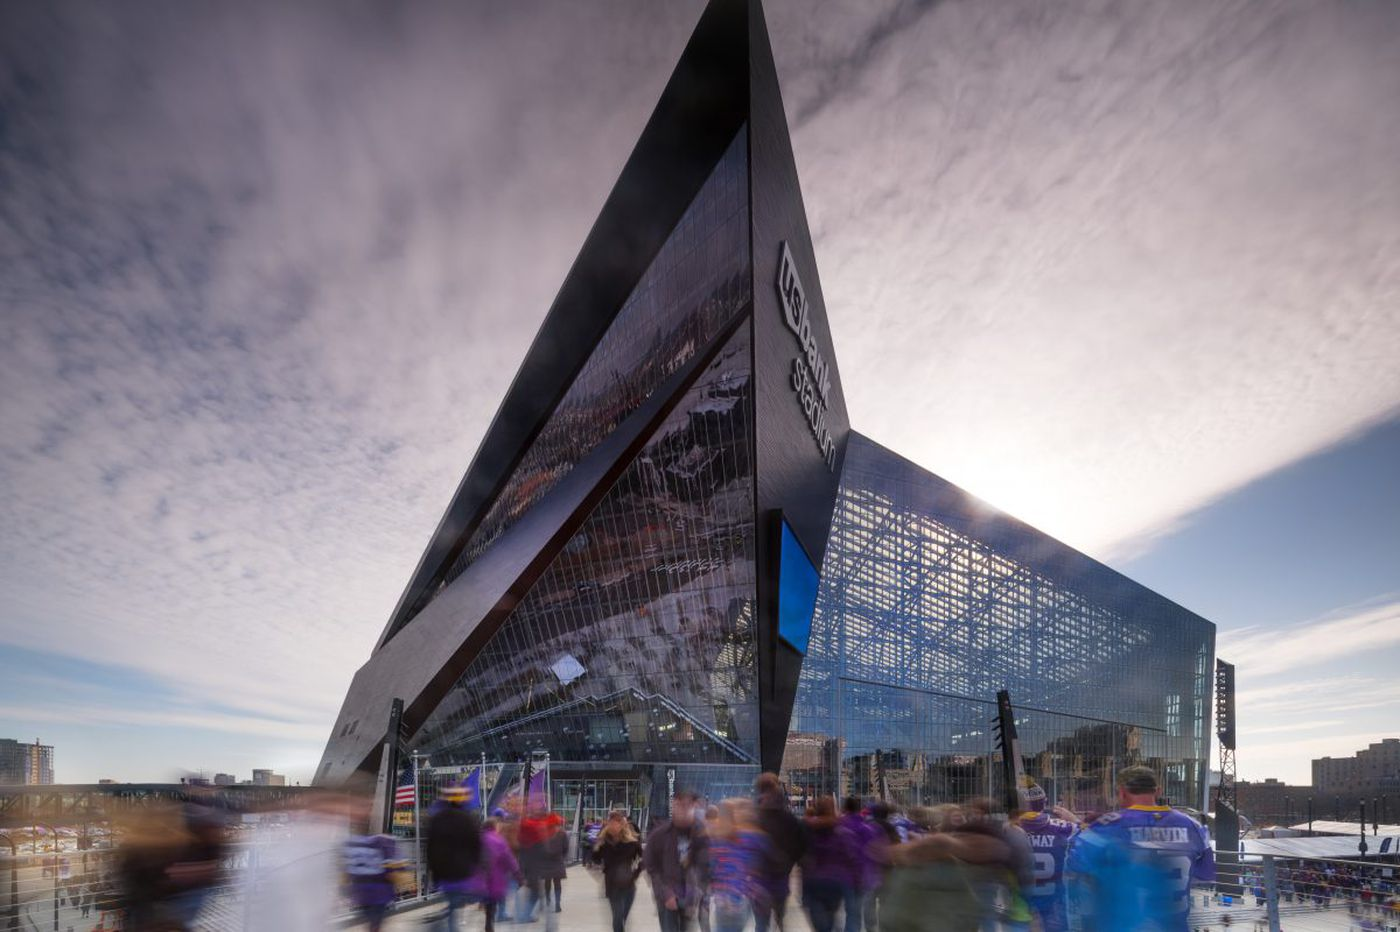 Eagles-Patriots Super Bowl venue is an otherworldly crystal palace